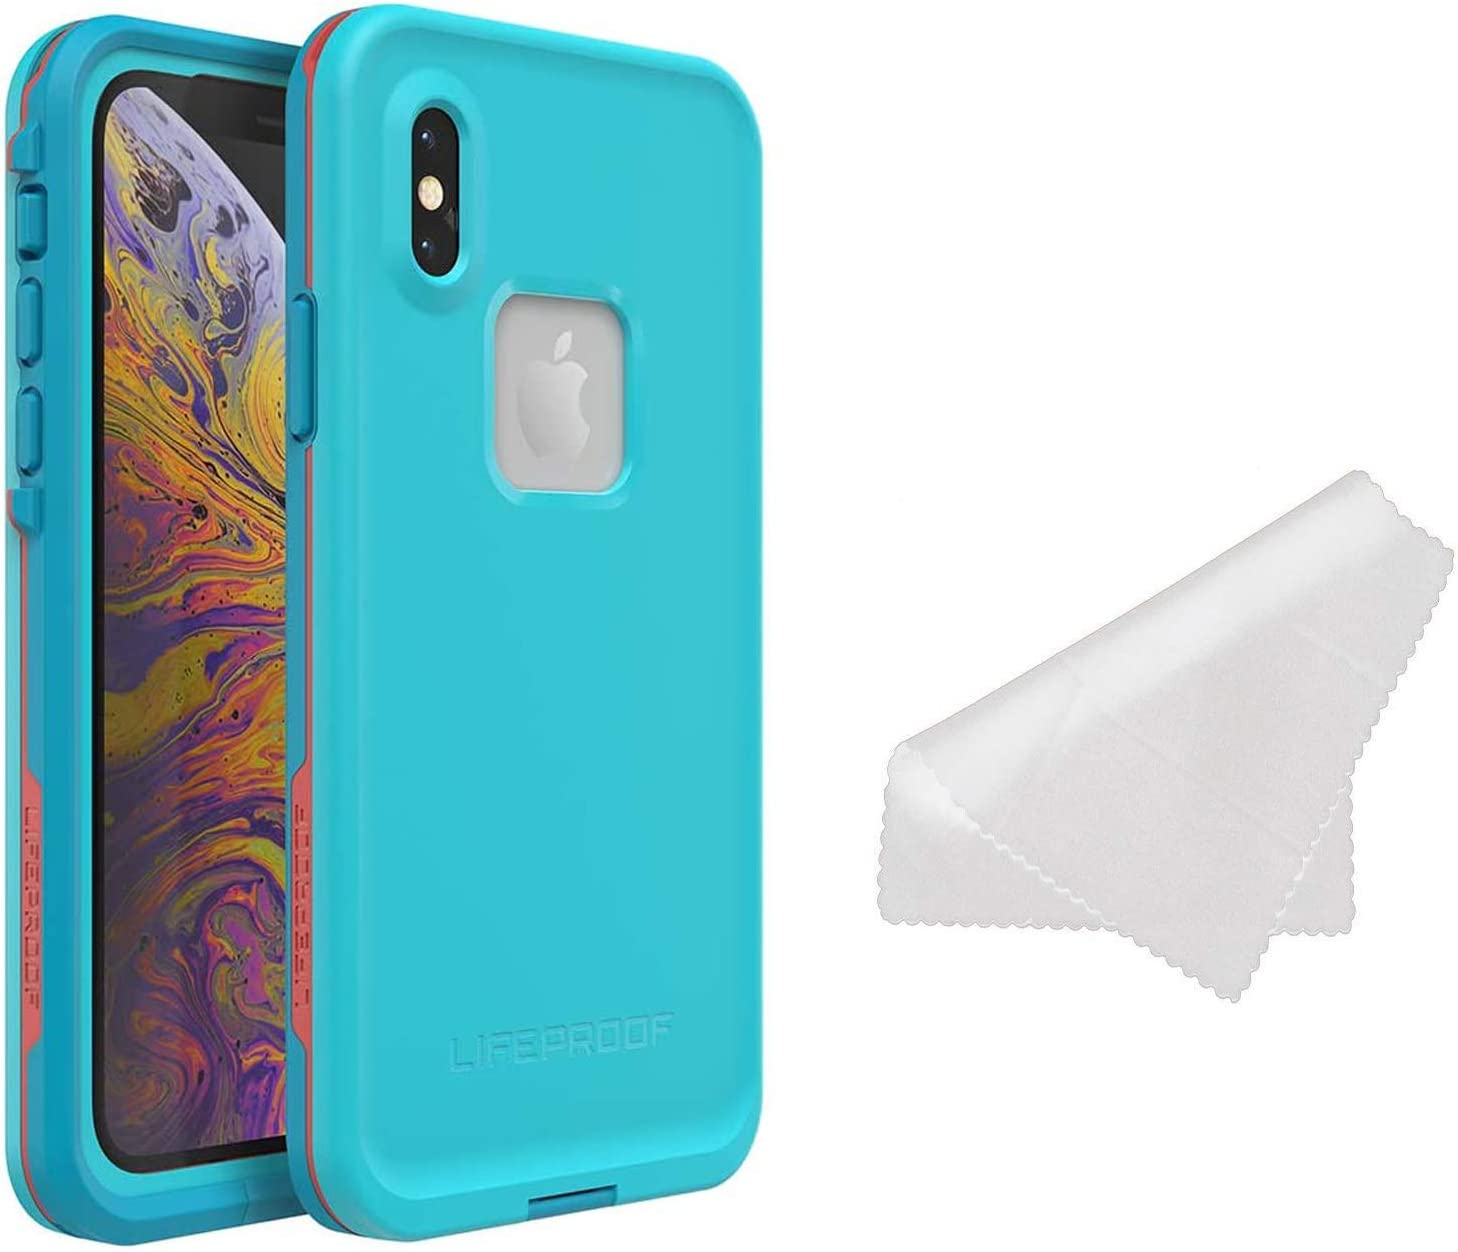 Lifeproof FRĒ Series Waterproof Case for iPhone Xs Max (ONLY) with Cleaning Cloth - Retail Packaging - Boosted (Blue Atoll/Hawaiian Ocean/Emberglow)